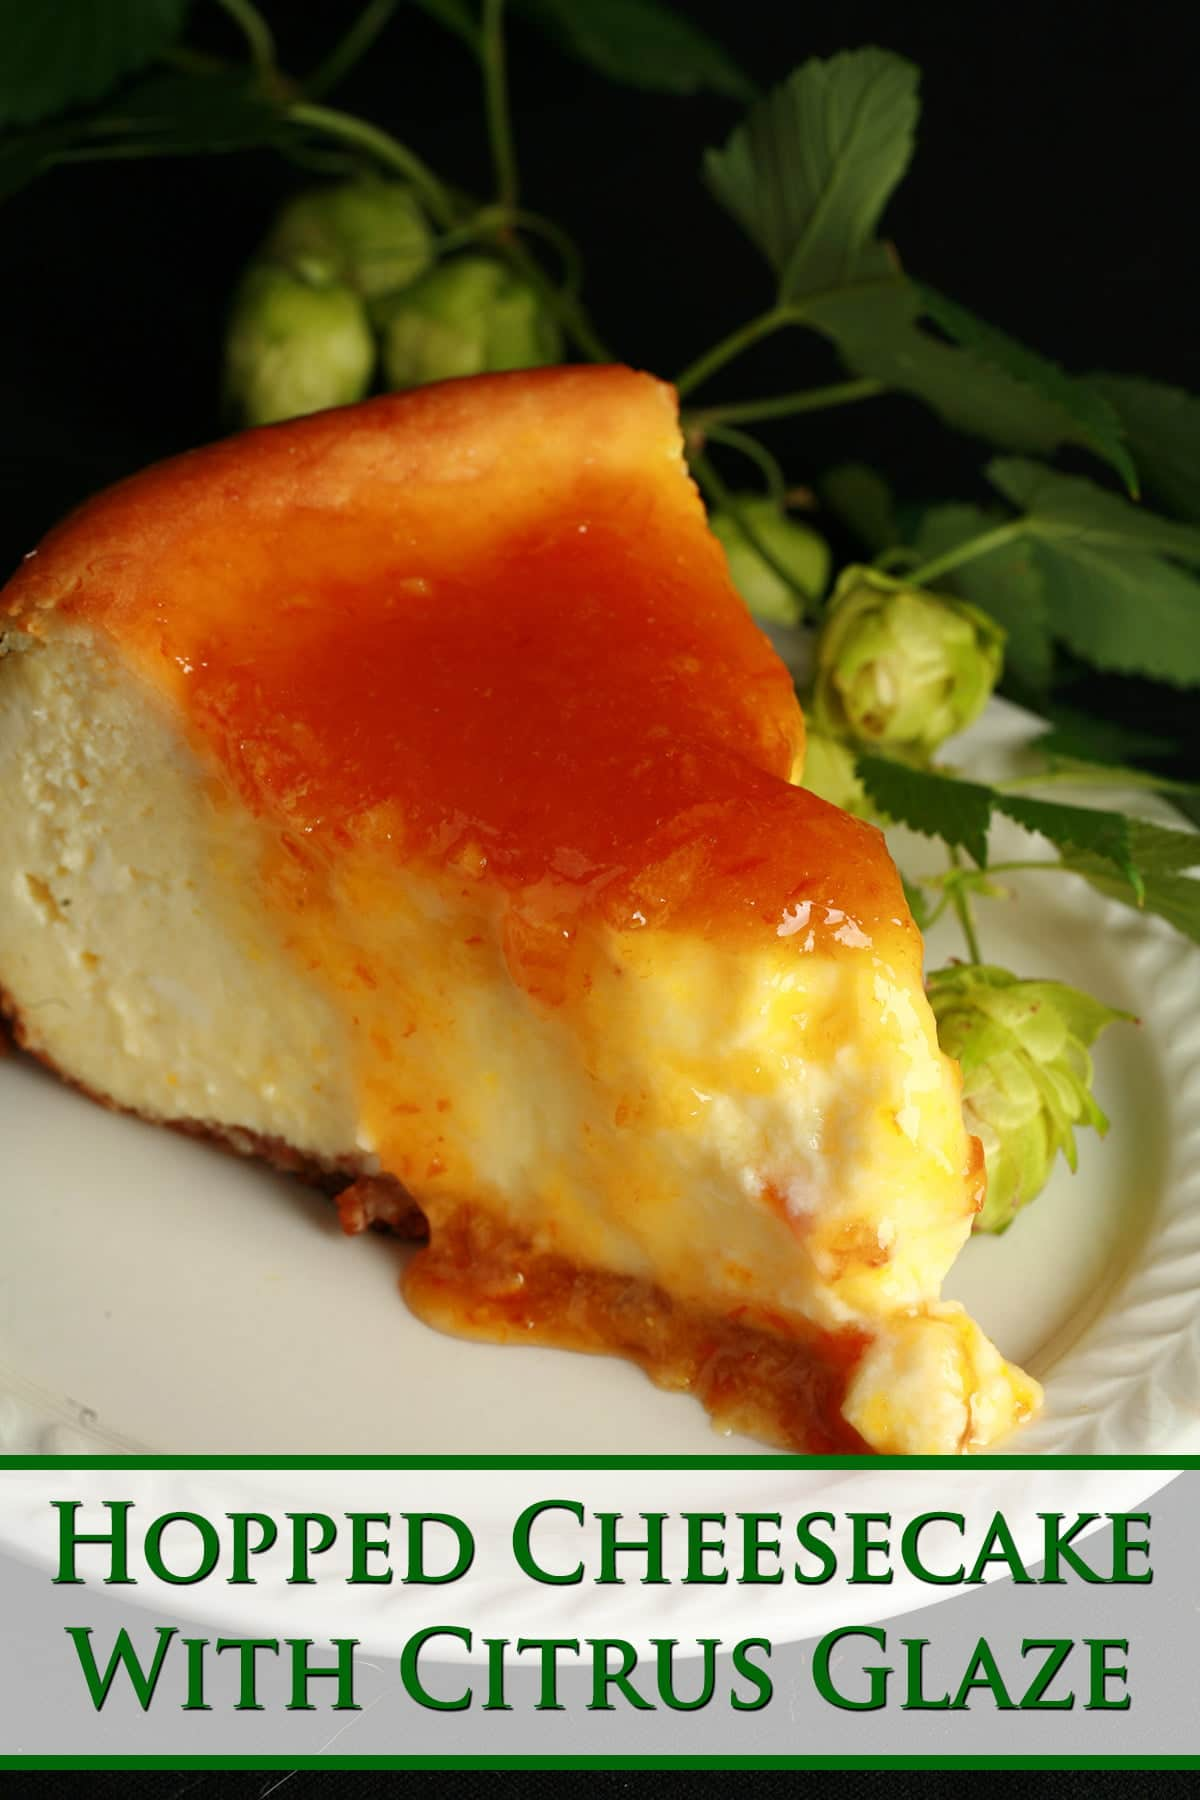 A slice of hop cheesecake with citrus glaze. The cheesecake is very pale yellow, topped with a bright orange glaze. It sits on a white plate, with a piece of fresh hop bine next to it.